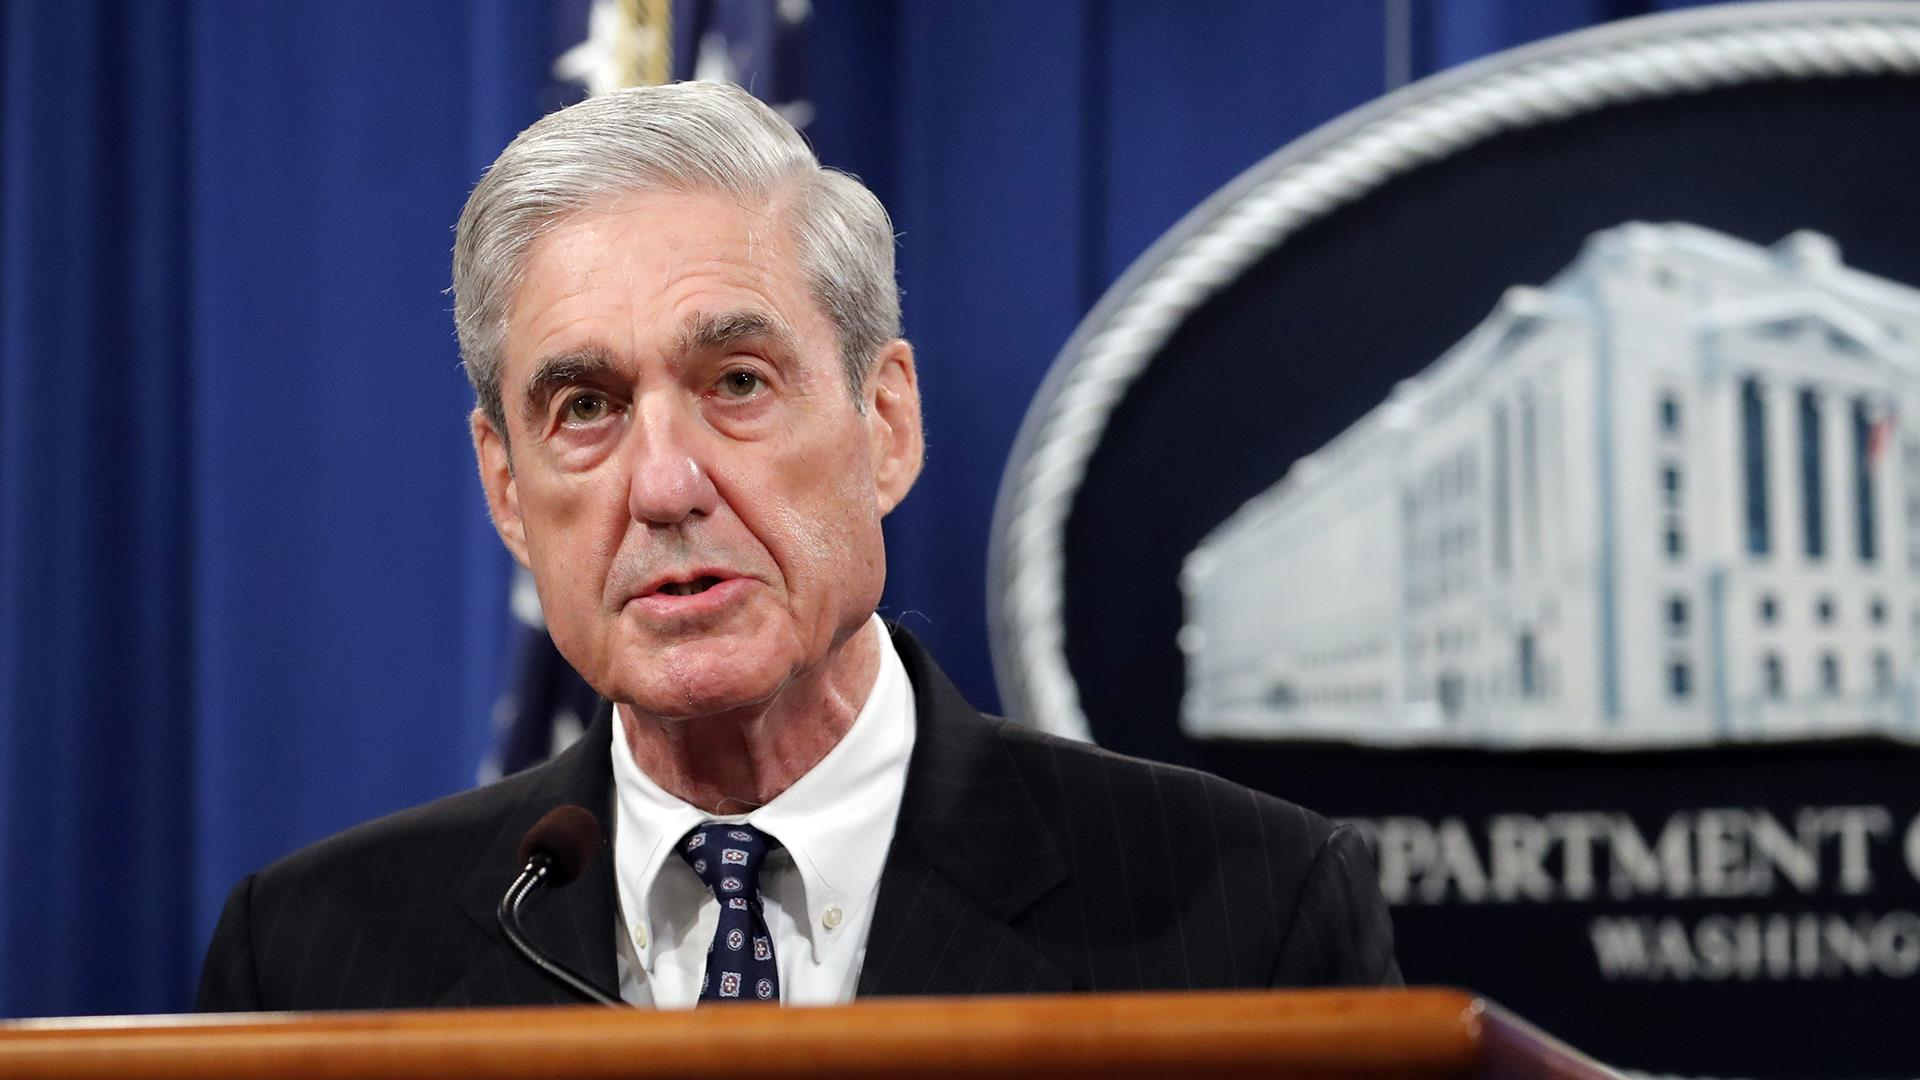 Mueller says charging Trump wasn't an 'option', won't comment beyond his report